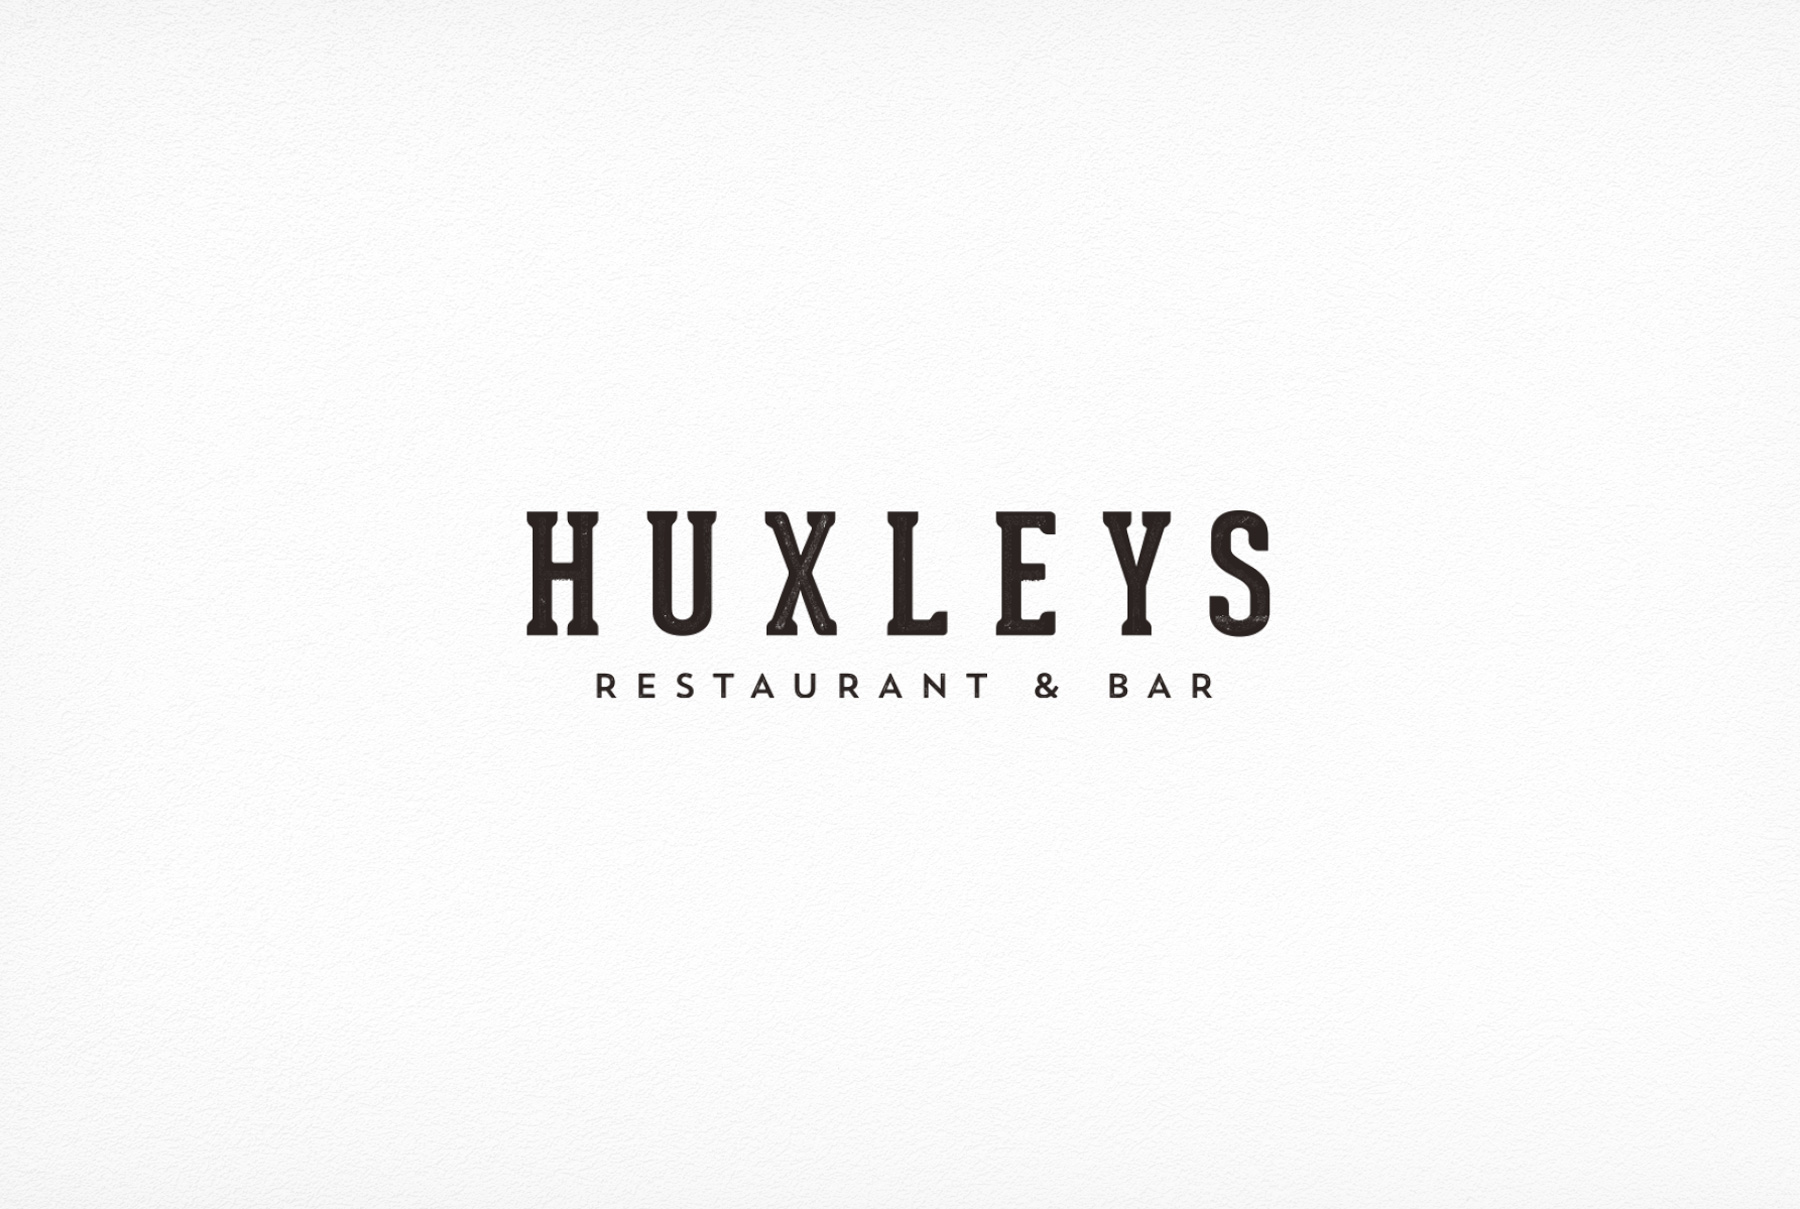 Huxleys Restaurant Bar Brand Repositioning - Logo Design